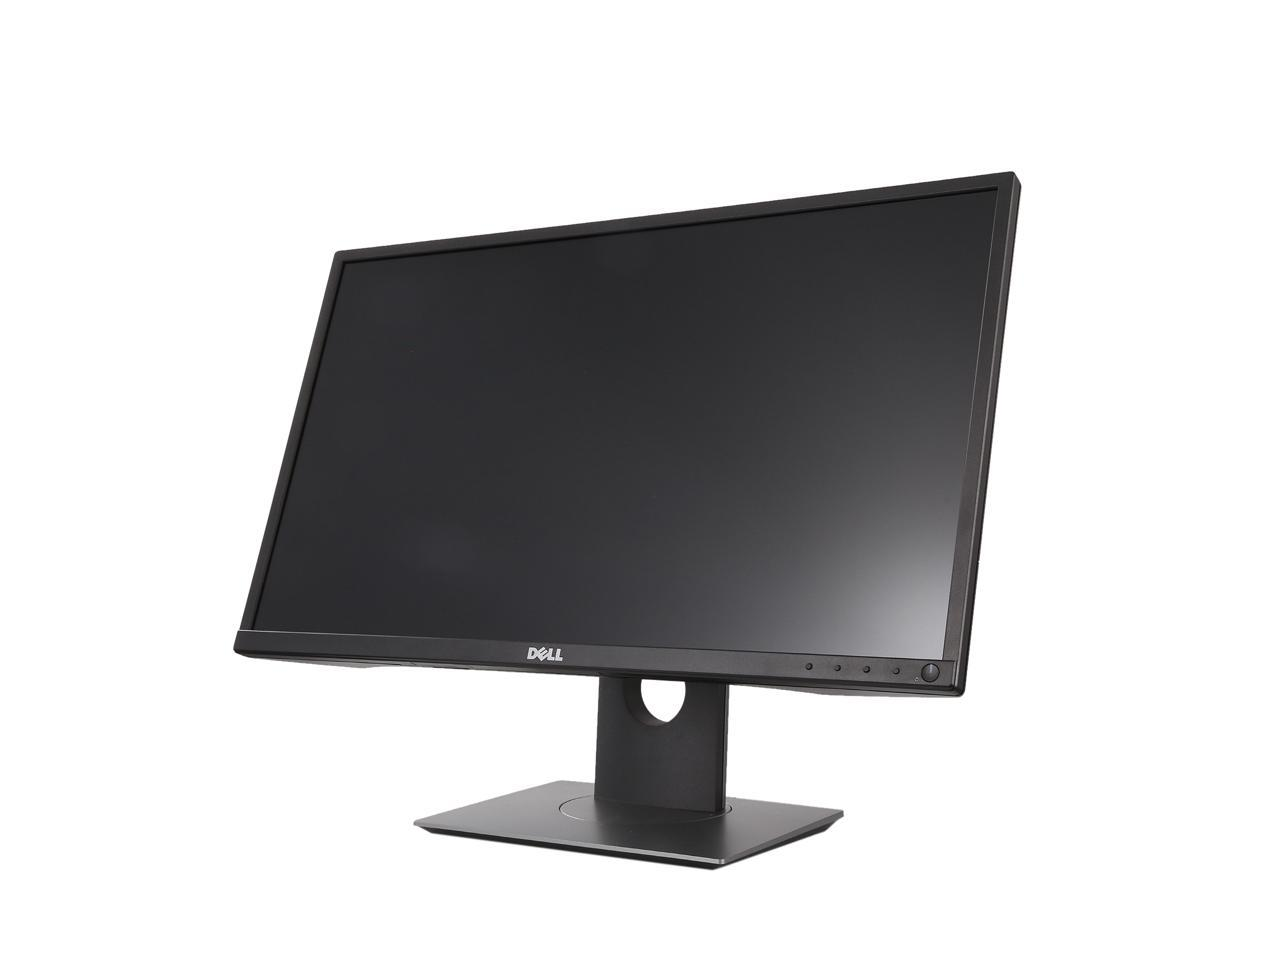 Monitors,Newegg.com